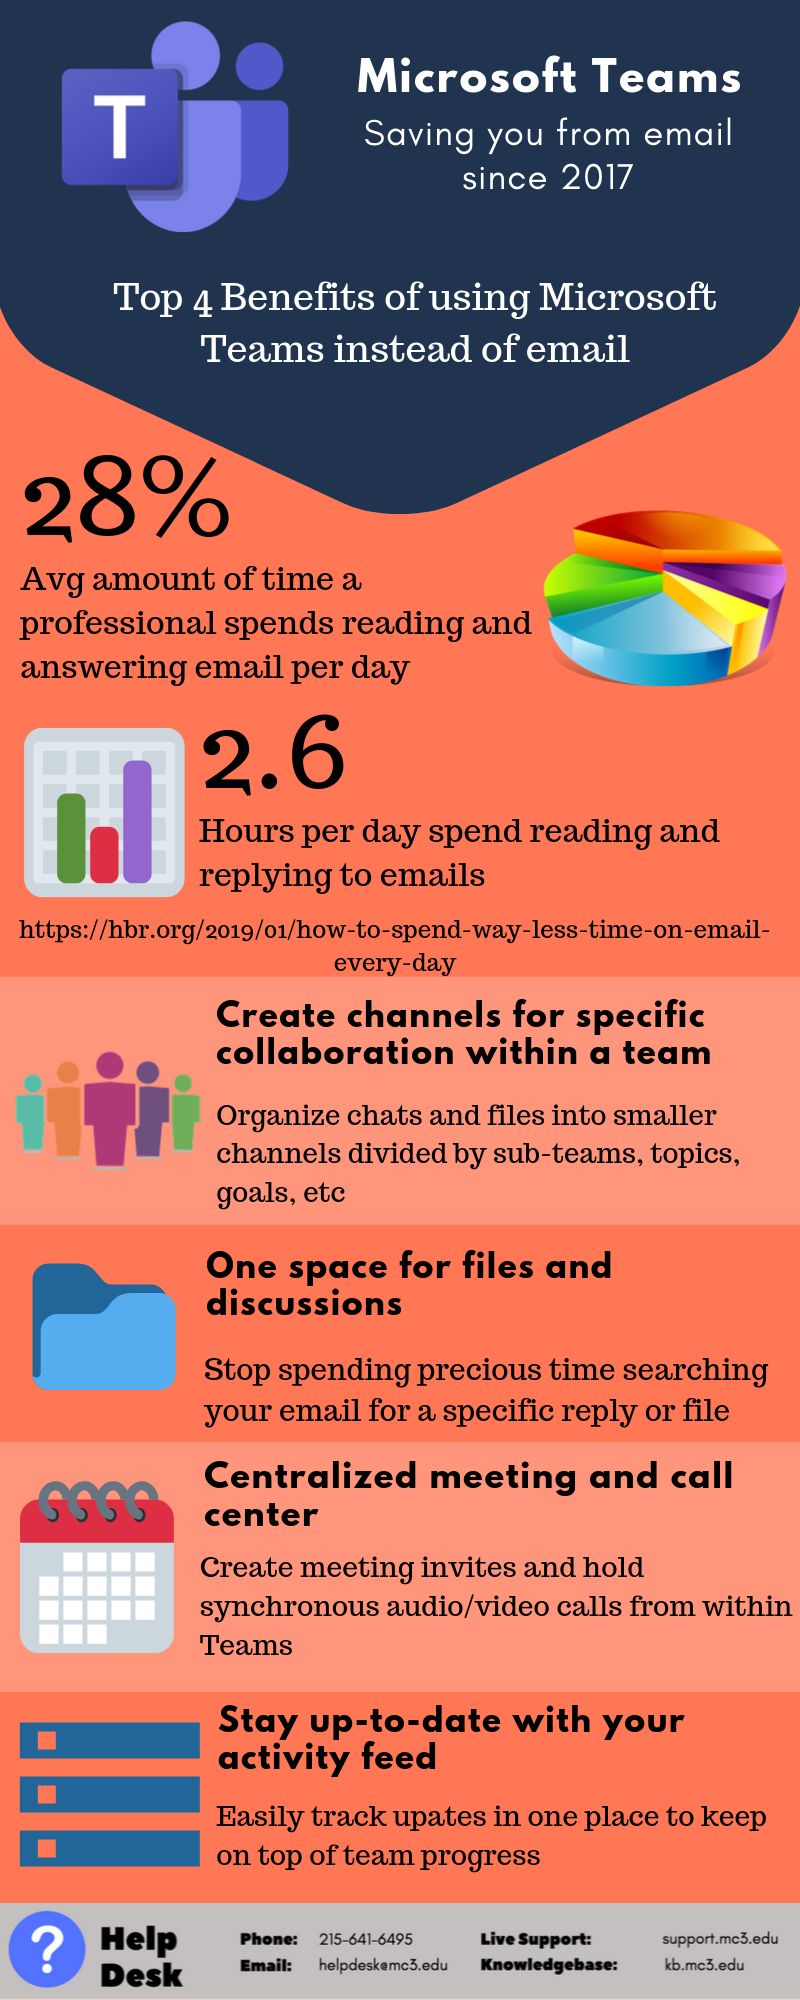 Title: Microsoft Teams - Saving you from email since 2017 Sub-header: Top 4 benefits of using Microsoft Teams instead of email  First block of information contains a generic image of a pie chart and that statistic that 28% is the average amount of time a professional spends reading and answering email per day. The second statistic include a generic image of a bar graph and the statistic that 2.6 hours per day is spent reading and replying to emails. The source is listed below these statistics, which is https://hbr.org/2019/01/how-to-spend-way-less-time-on-email-every-day   The first of four benefits is the ability to create channels for specific collaboration within a team. You can organize chats and files into smaller channels divided by sub-teams, topics, goals, etc.   The second of four benefits is there is one space for files and discussions. You can stop spending precious time searching your email for a specific reply or file.   The third of four benefits is a centralized meeting and call center. Create meeting invites and hold synchronous audio/video calls from within Teams.  The fourth of four benefits is staying up-to-date with your activity feed. Easily track updates in one place to keep on top of team progress.